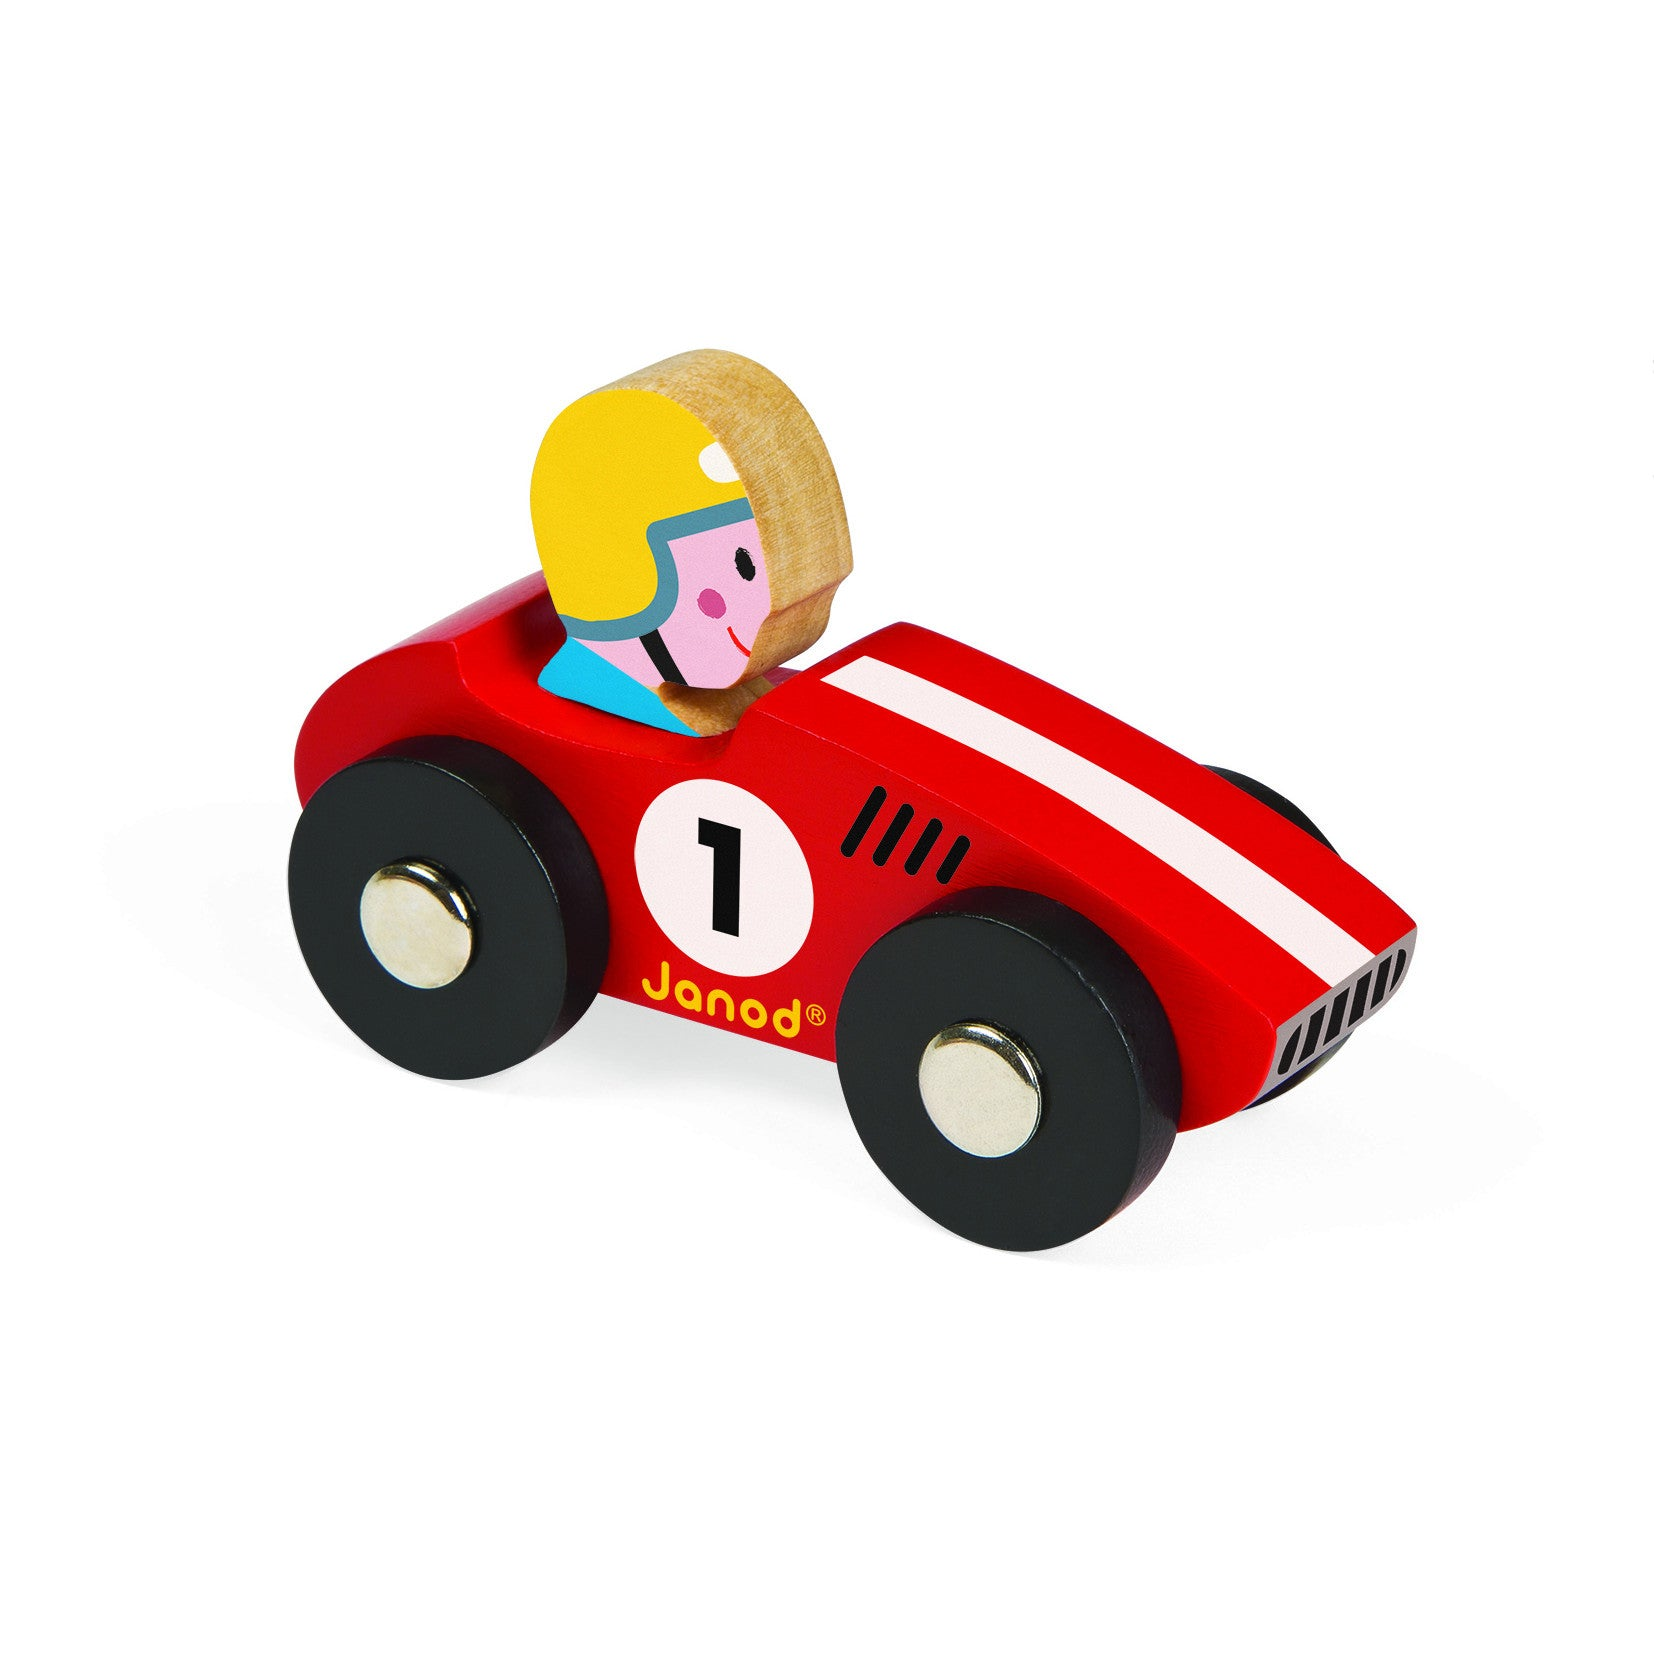 Janod Story Racing Retro Car - Red